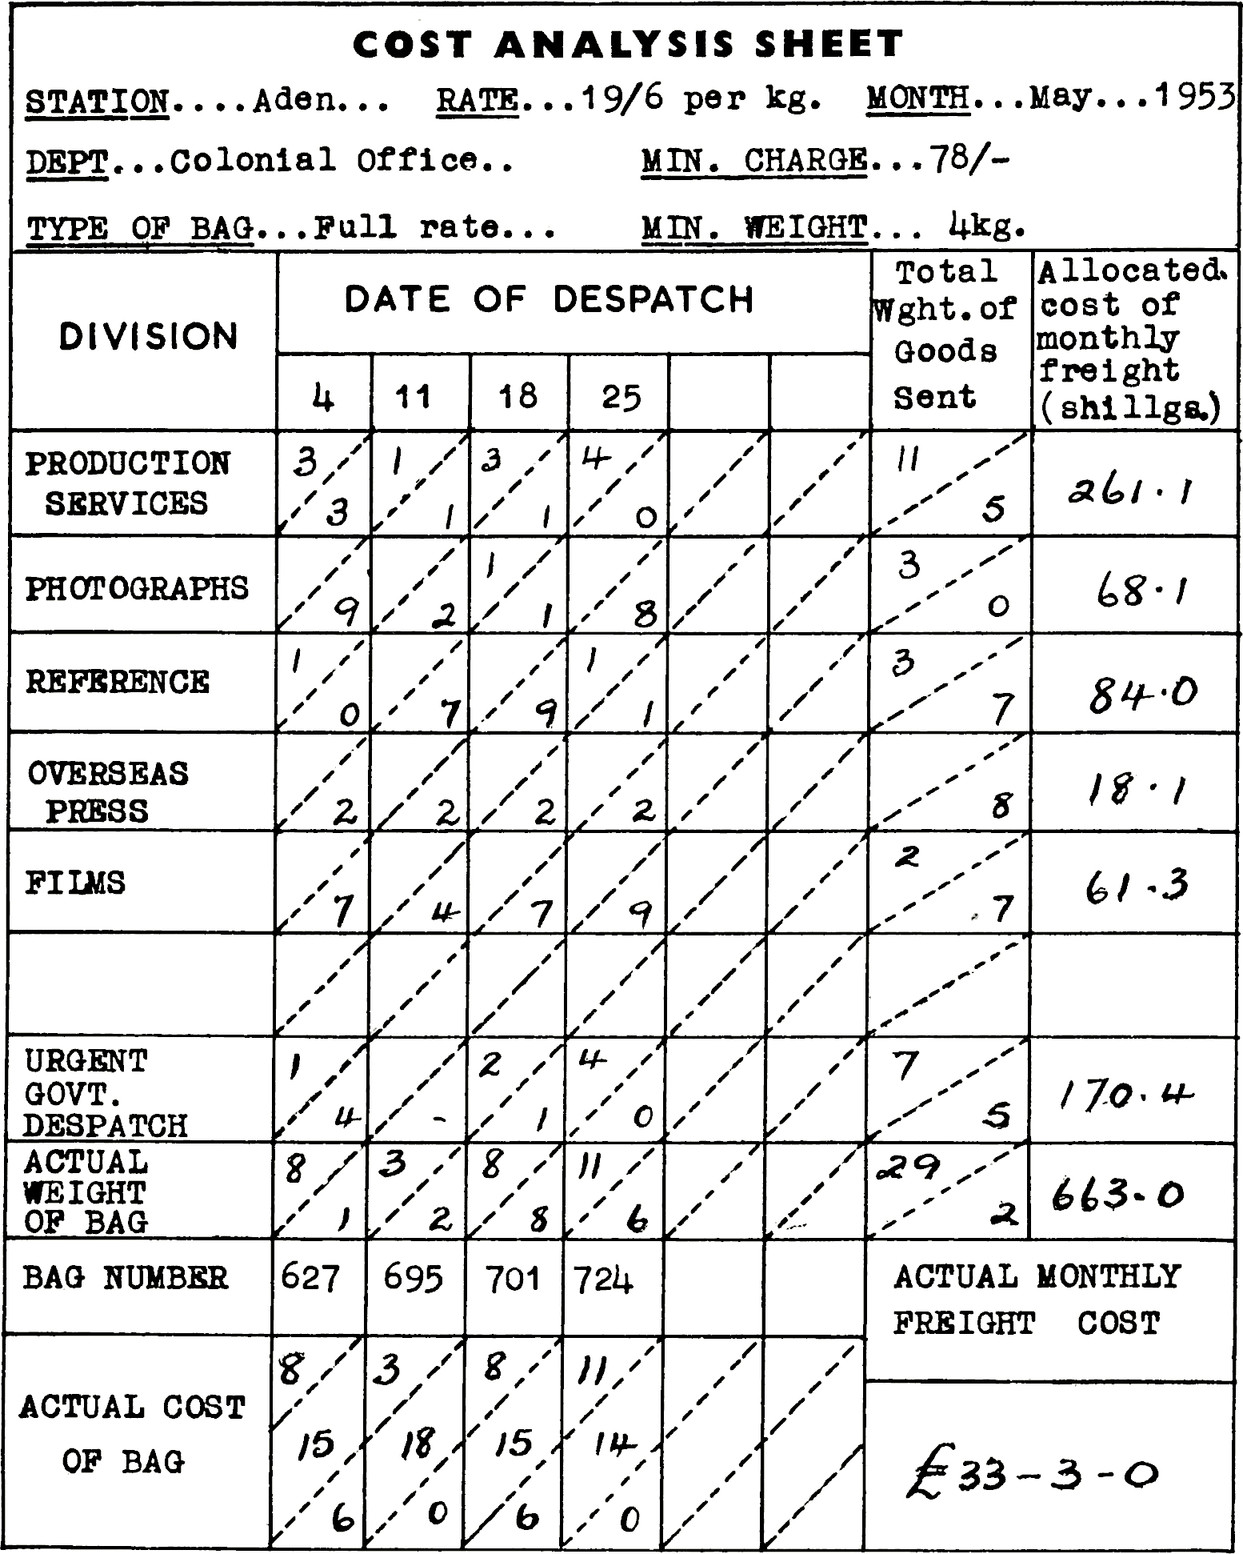 Form with title COST ANALYSIS SHEET. STATION: Aden. RATE: 19/6 per kg. MONTH: May, 1953. DEPT: Colonial Office. MIN CHARGE: 78/-. TYPE OF BAG: Full rate. MIN WEIGHT: 4kg. Table four columns. Column 1 divison, Column 2 date of despatch, Sub-columns for dates 4, 11, 18, 25. Column 3 total weight of goods sent. Column 4 allocated cost of monthly freight (shillings). Row 1 PRODUCTION SERVICES. Date of dispatch: (4) 3 / 3, (11) 1 / 1, (18) 3 / 1, (25) 4 / 0. Total weight: 11 / 5. Allocated cost: 261.1. Row 2 PHOTOGRAPHS. Date of dispatch: (4) blank / 9, (11) blank / 2, (18) 1 / 1, (25) blank / 8. Total weight: 3 / 0. Allocated cost: 68.1. Row 3 REFERENCE. Date of dispatch: (4) 1 / 0, (11) blank / 7, (18) blank / 9, (25) 1 / 1. Total weight: 3 / 7. Allocated cost: 84.0. Row 4 OVERSEAS PRESS. Date of dispatch: (4) blank / 2, (11) blank / 2, (18) blank / 2, (25) blank / 2. Total weight: blank / 8. Allocated cost: 18.1. Row 5 FILMS. Date of dispatch: (4) blank / 7, (11) blank / 4, (18) blank / 7, (25) blank / 9. Total weight: 2 / 7. Allocated cost: 61.3 Row 6 URGENT GOVT DESPATCH. Date of dispatch: (4) 1 / 4, (11) blank / blank, (18) 2 / 1, (25) 4 / 0. Total weight: 27 / 5. Allocated cost: 170.4. Row 7 ACTUAL WEIGHT OF BAG. Date of dispatch: (4) 8 / 1, (11) 3 / 2, (18) 8 / 8, (25) 11 / 6. Total weight: 29 / 2. Allocated cost: 663.0. Row 8 BAG NUMBER: (4) 627, (11) 695, (18) 701, (25) 724. Row 9 ACTUAL COST OF BAG. (4) 8 / 15 / 6, (11) 3 / 18 / 6, (18) 8 / 15 / 6, (25) 11, 14, 0). ACTUAL MONTHLY FREIGHT COST: £33-3-0.